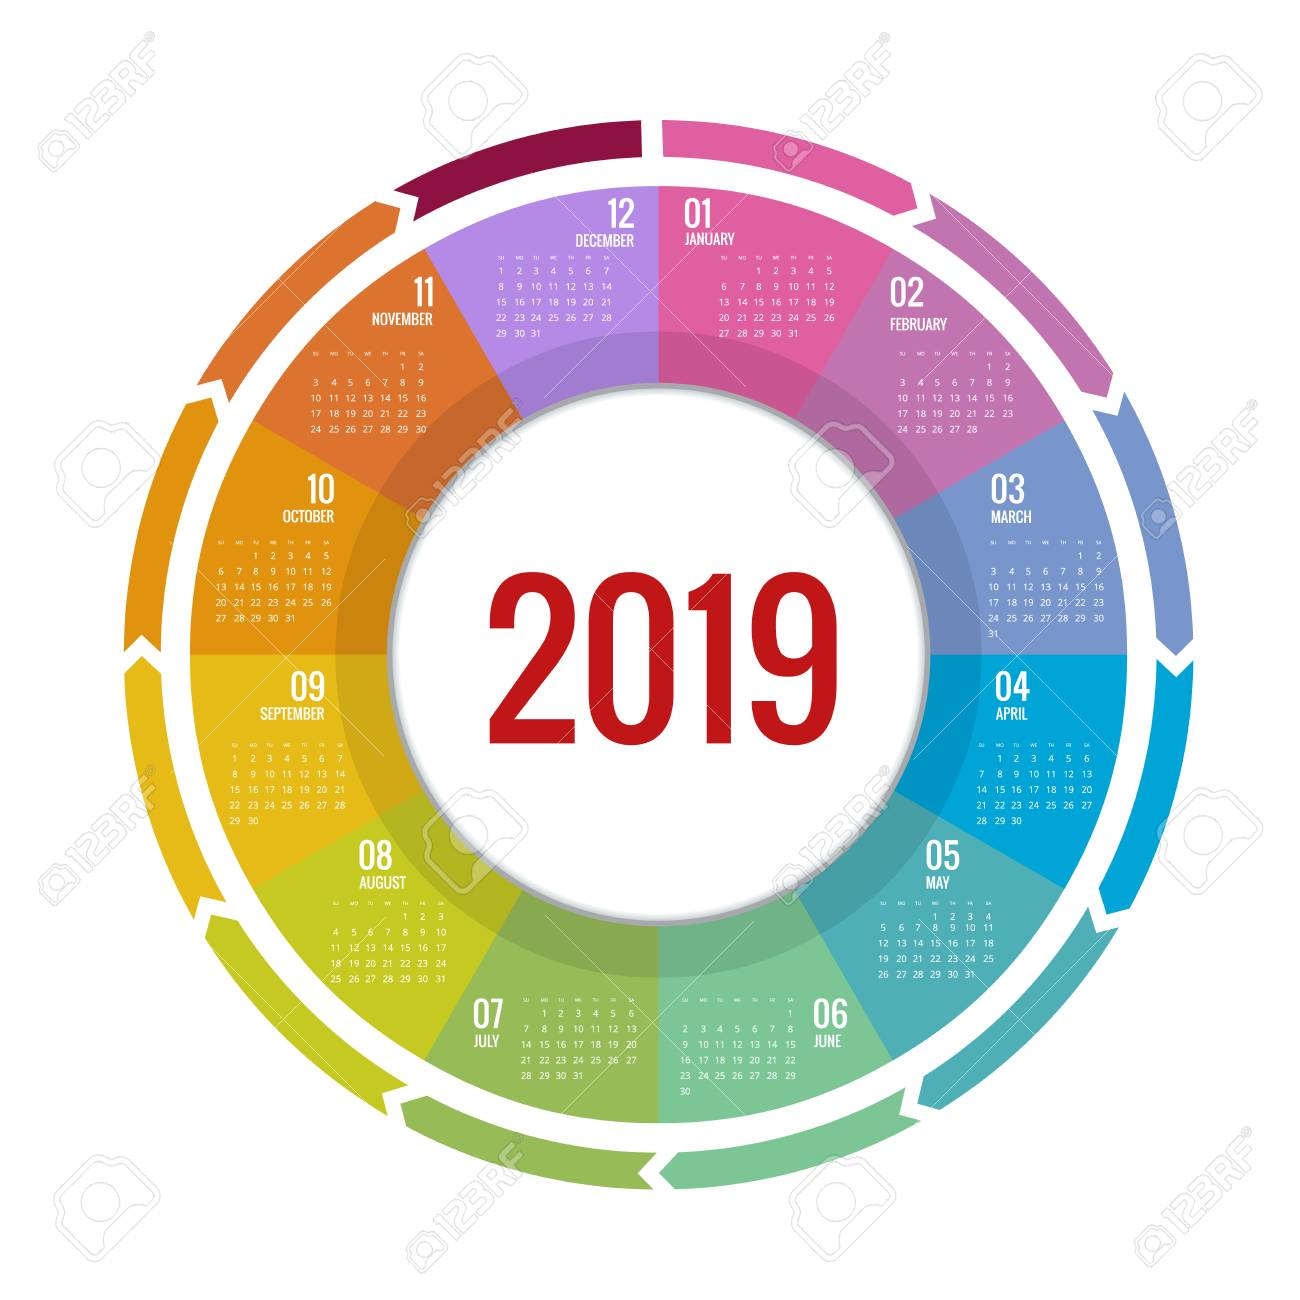 Year Round Calendar 2019 Colorful Round Calendar 2019 Design Royalty Free Cliparts, Vectors